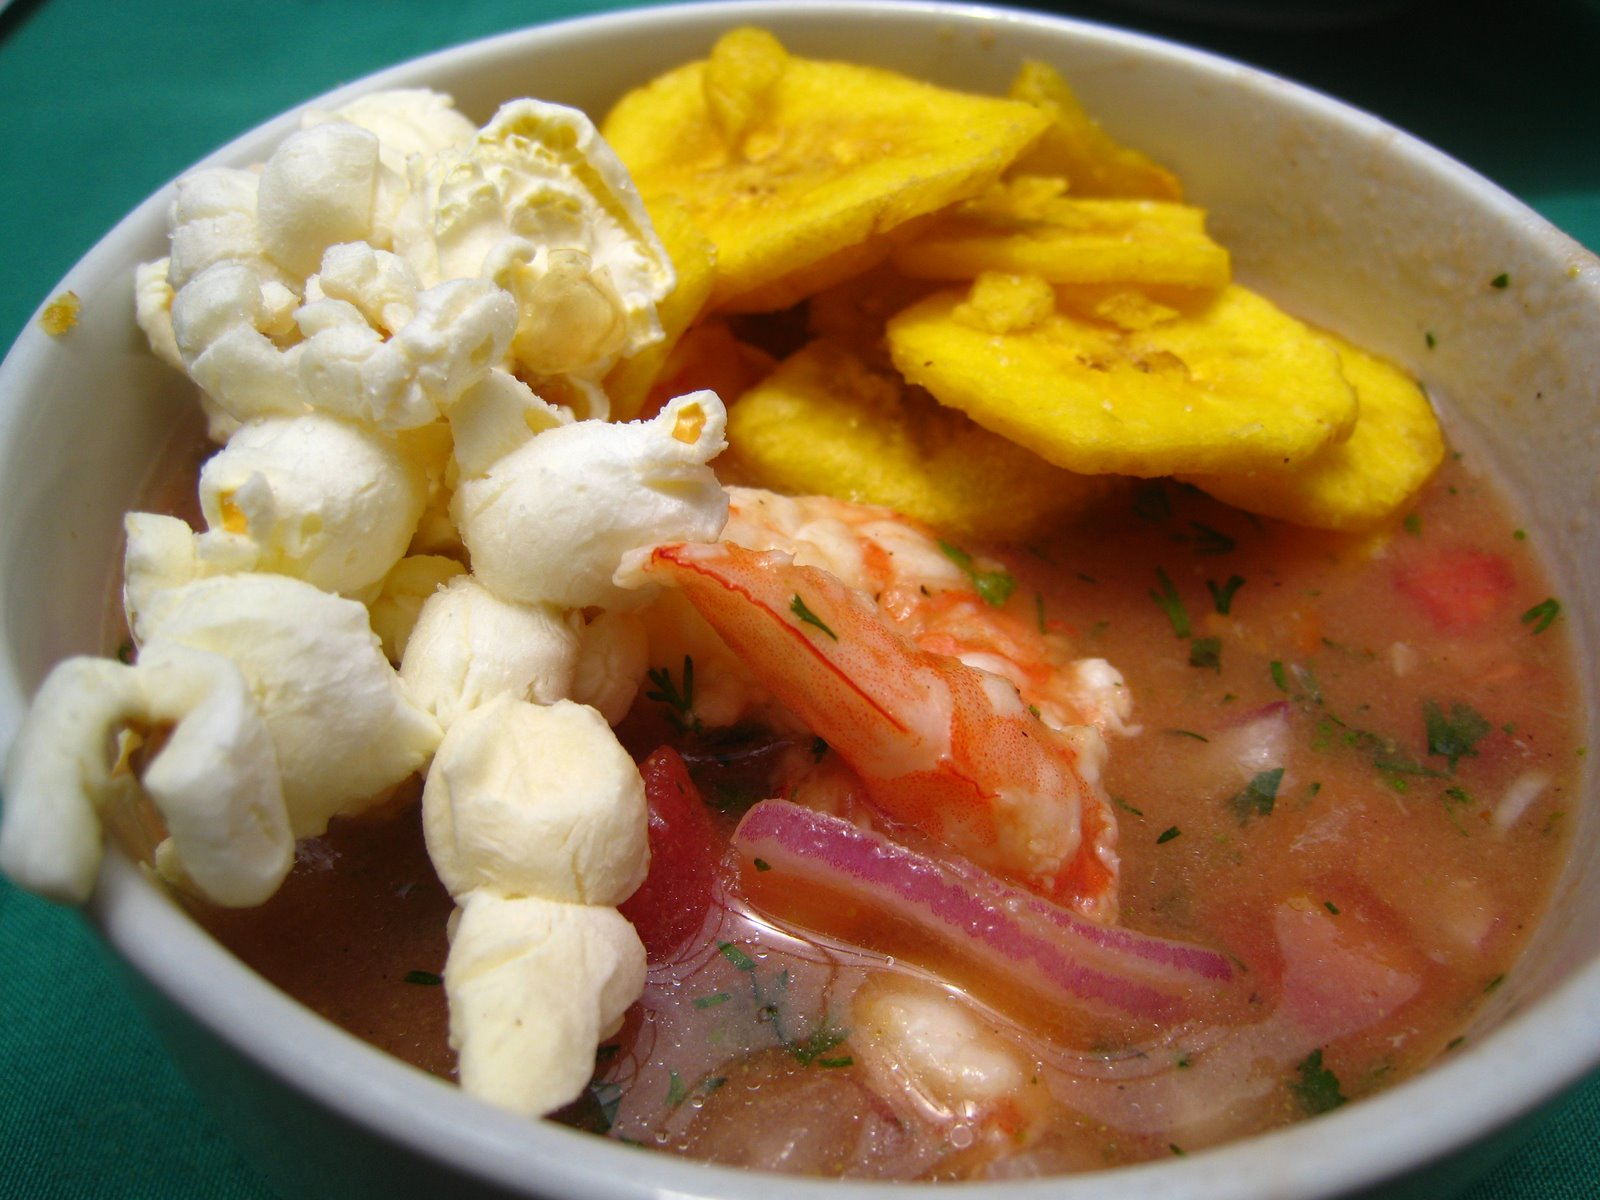 ecuadorian ceviche - photo #14